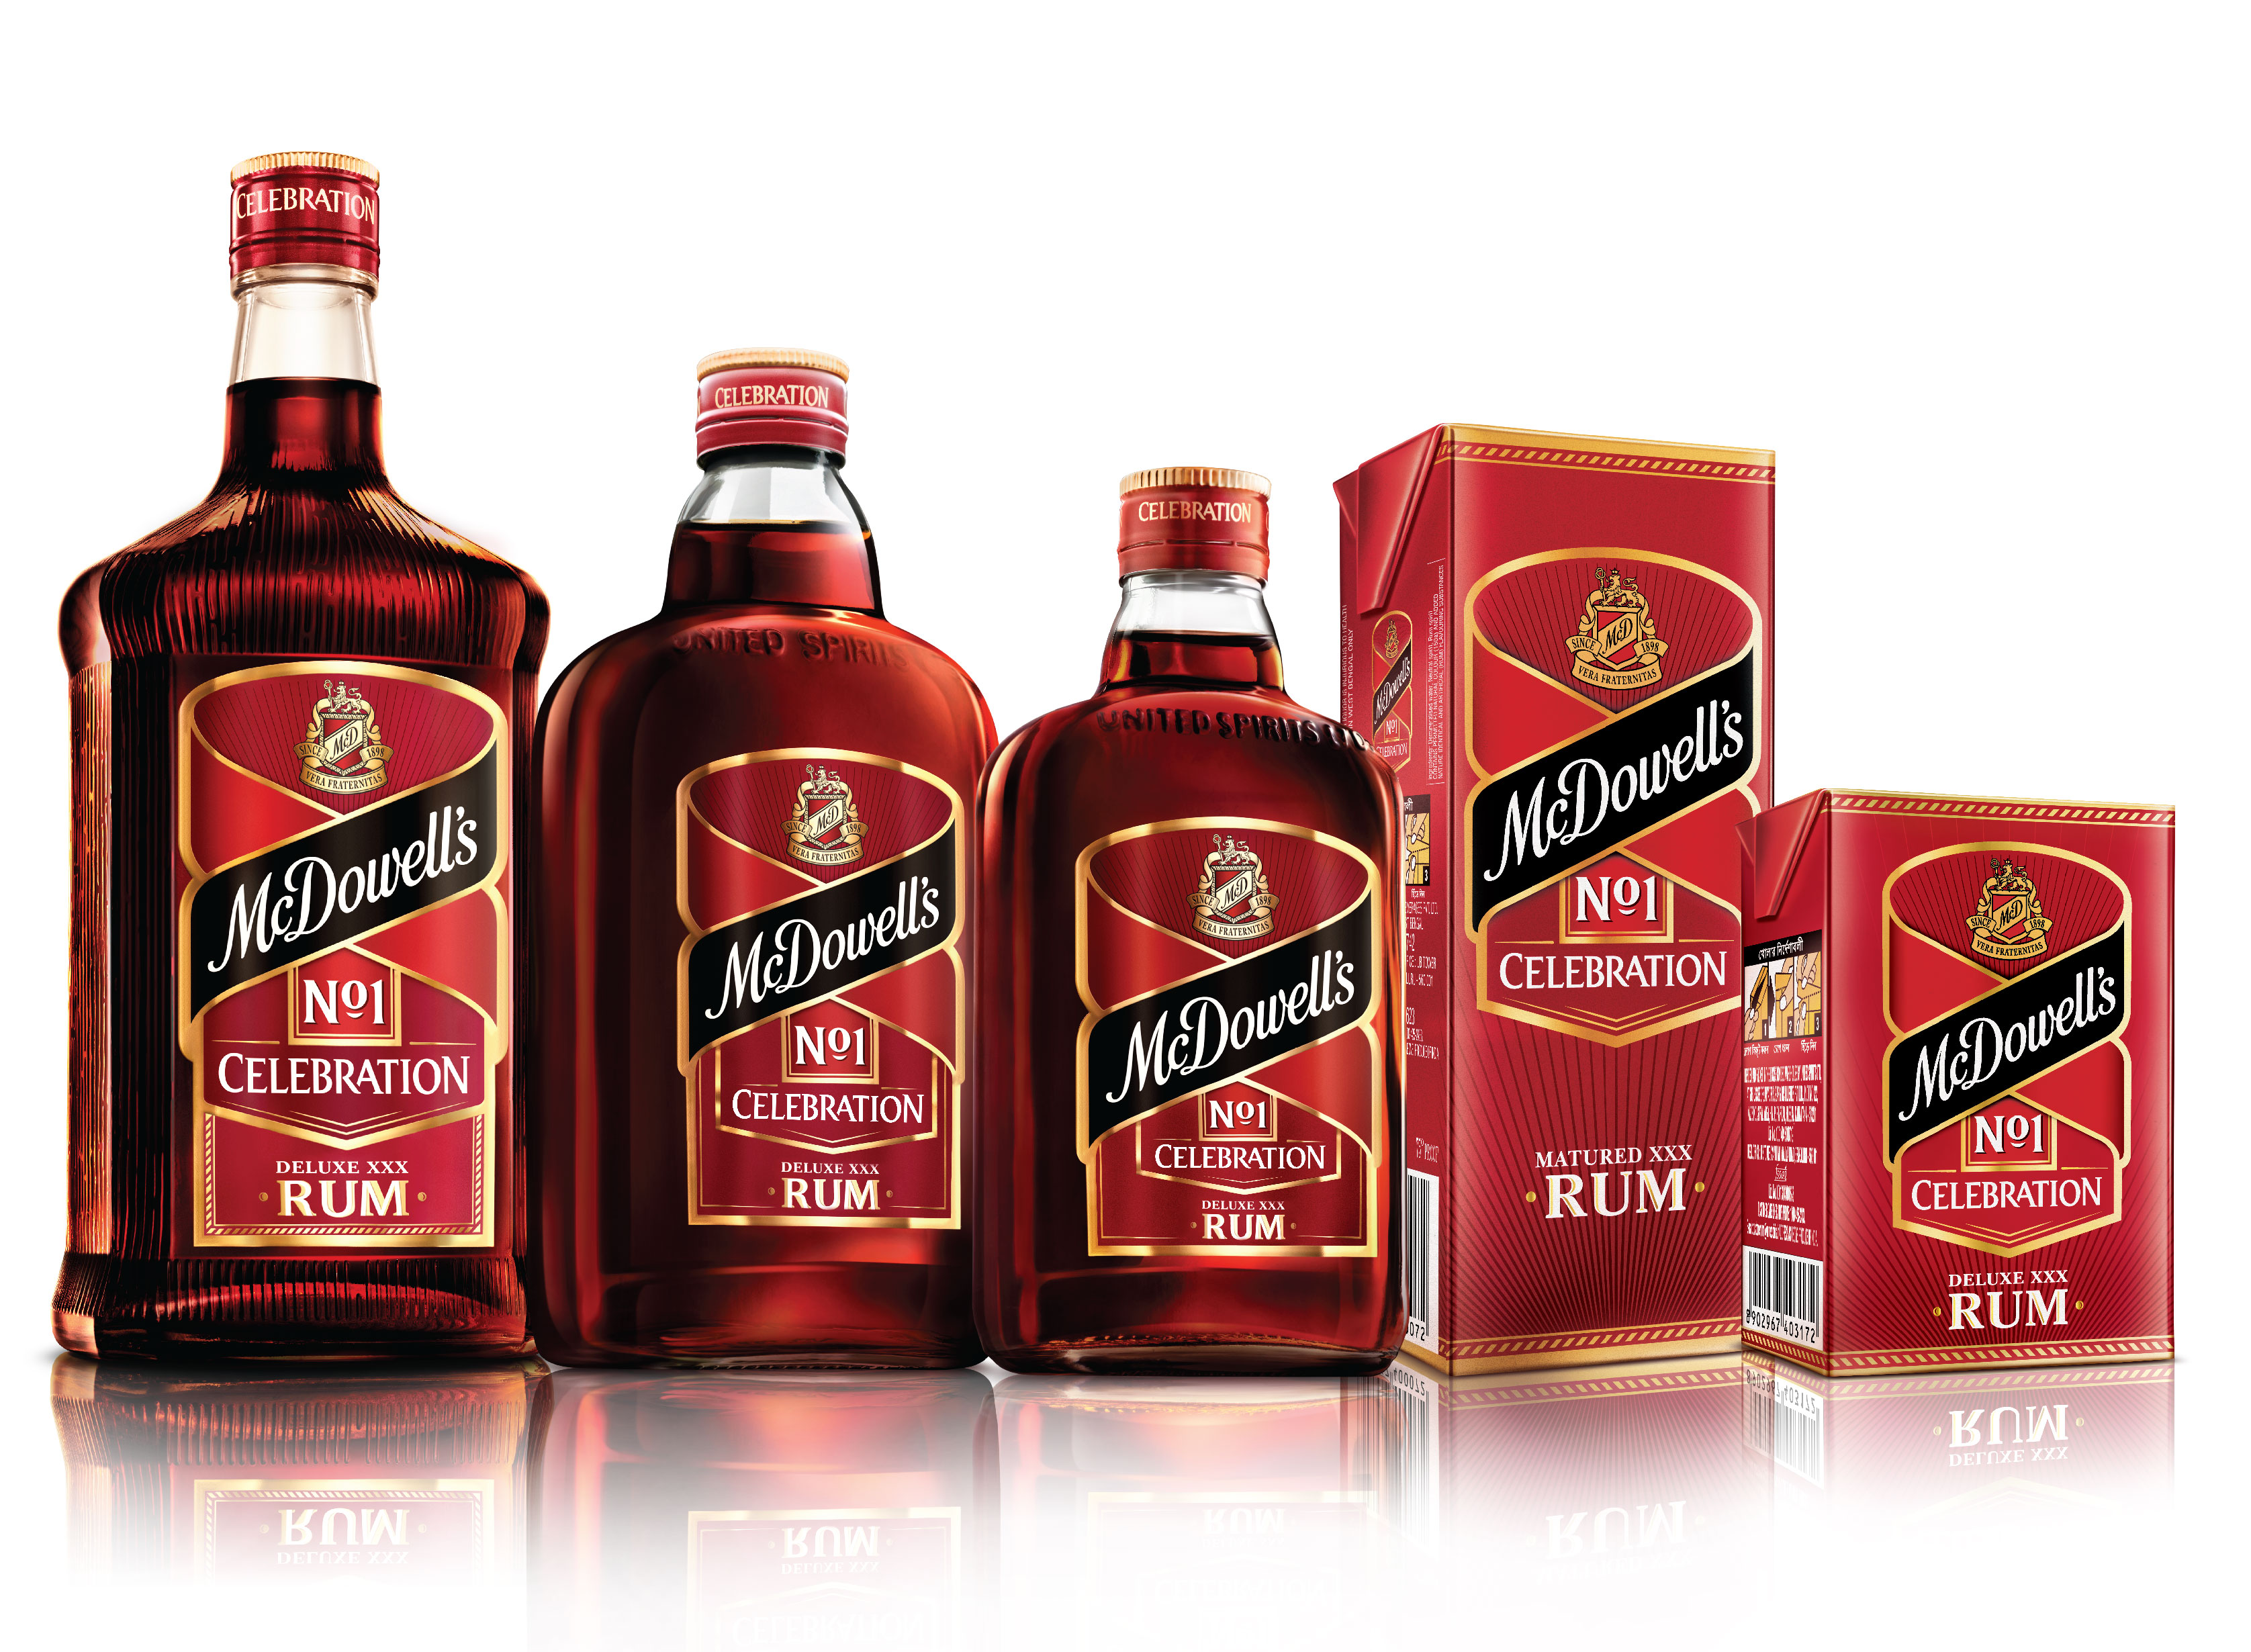 McDowell's No.1 Celebration Rum